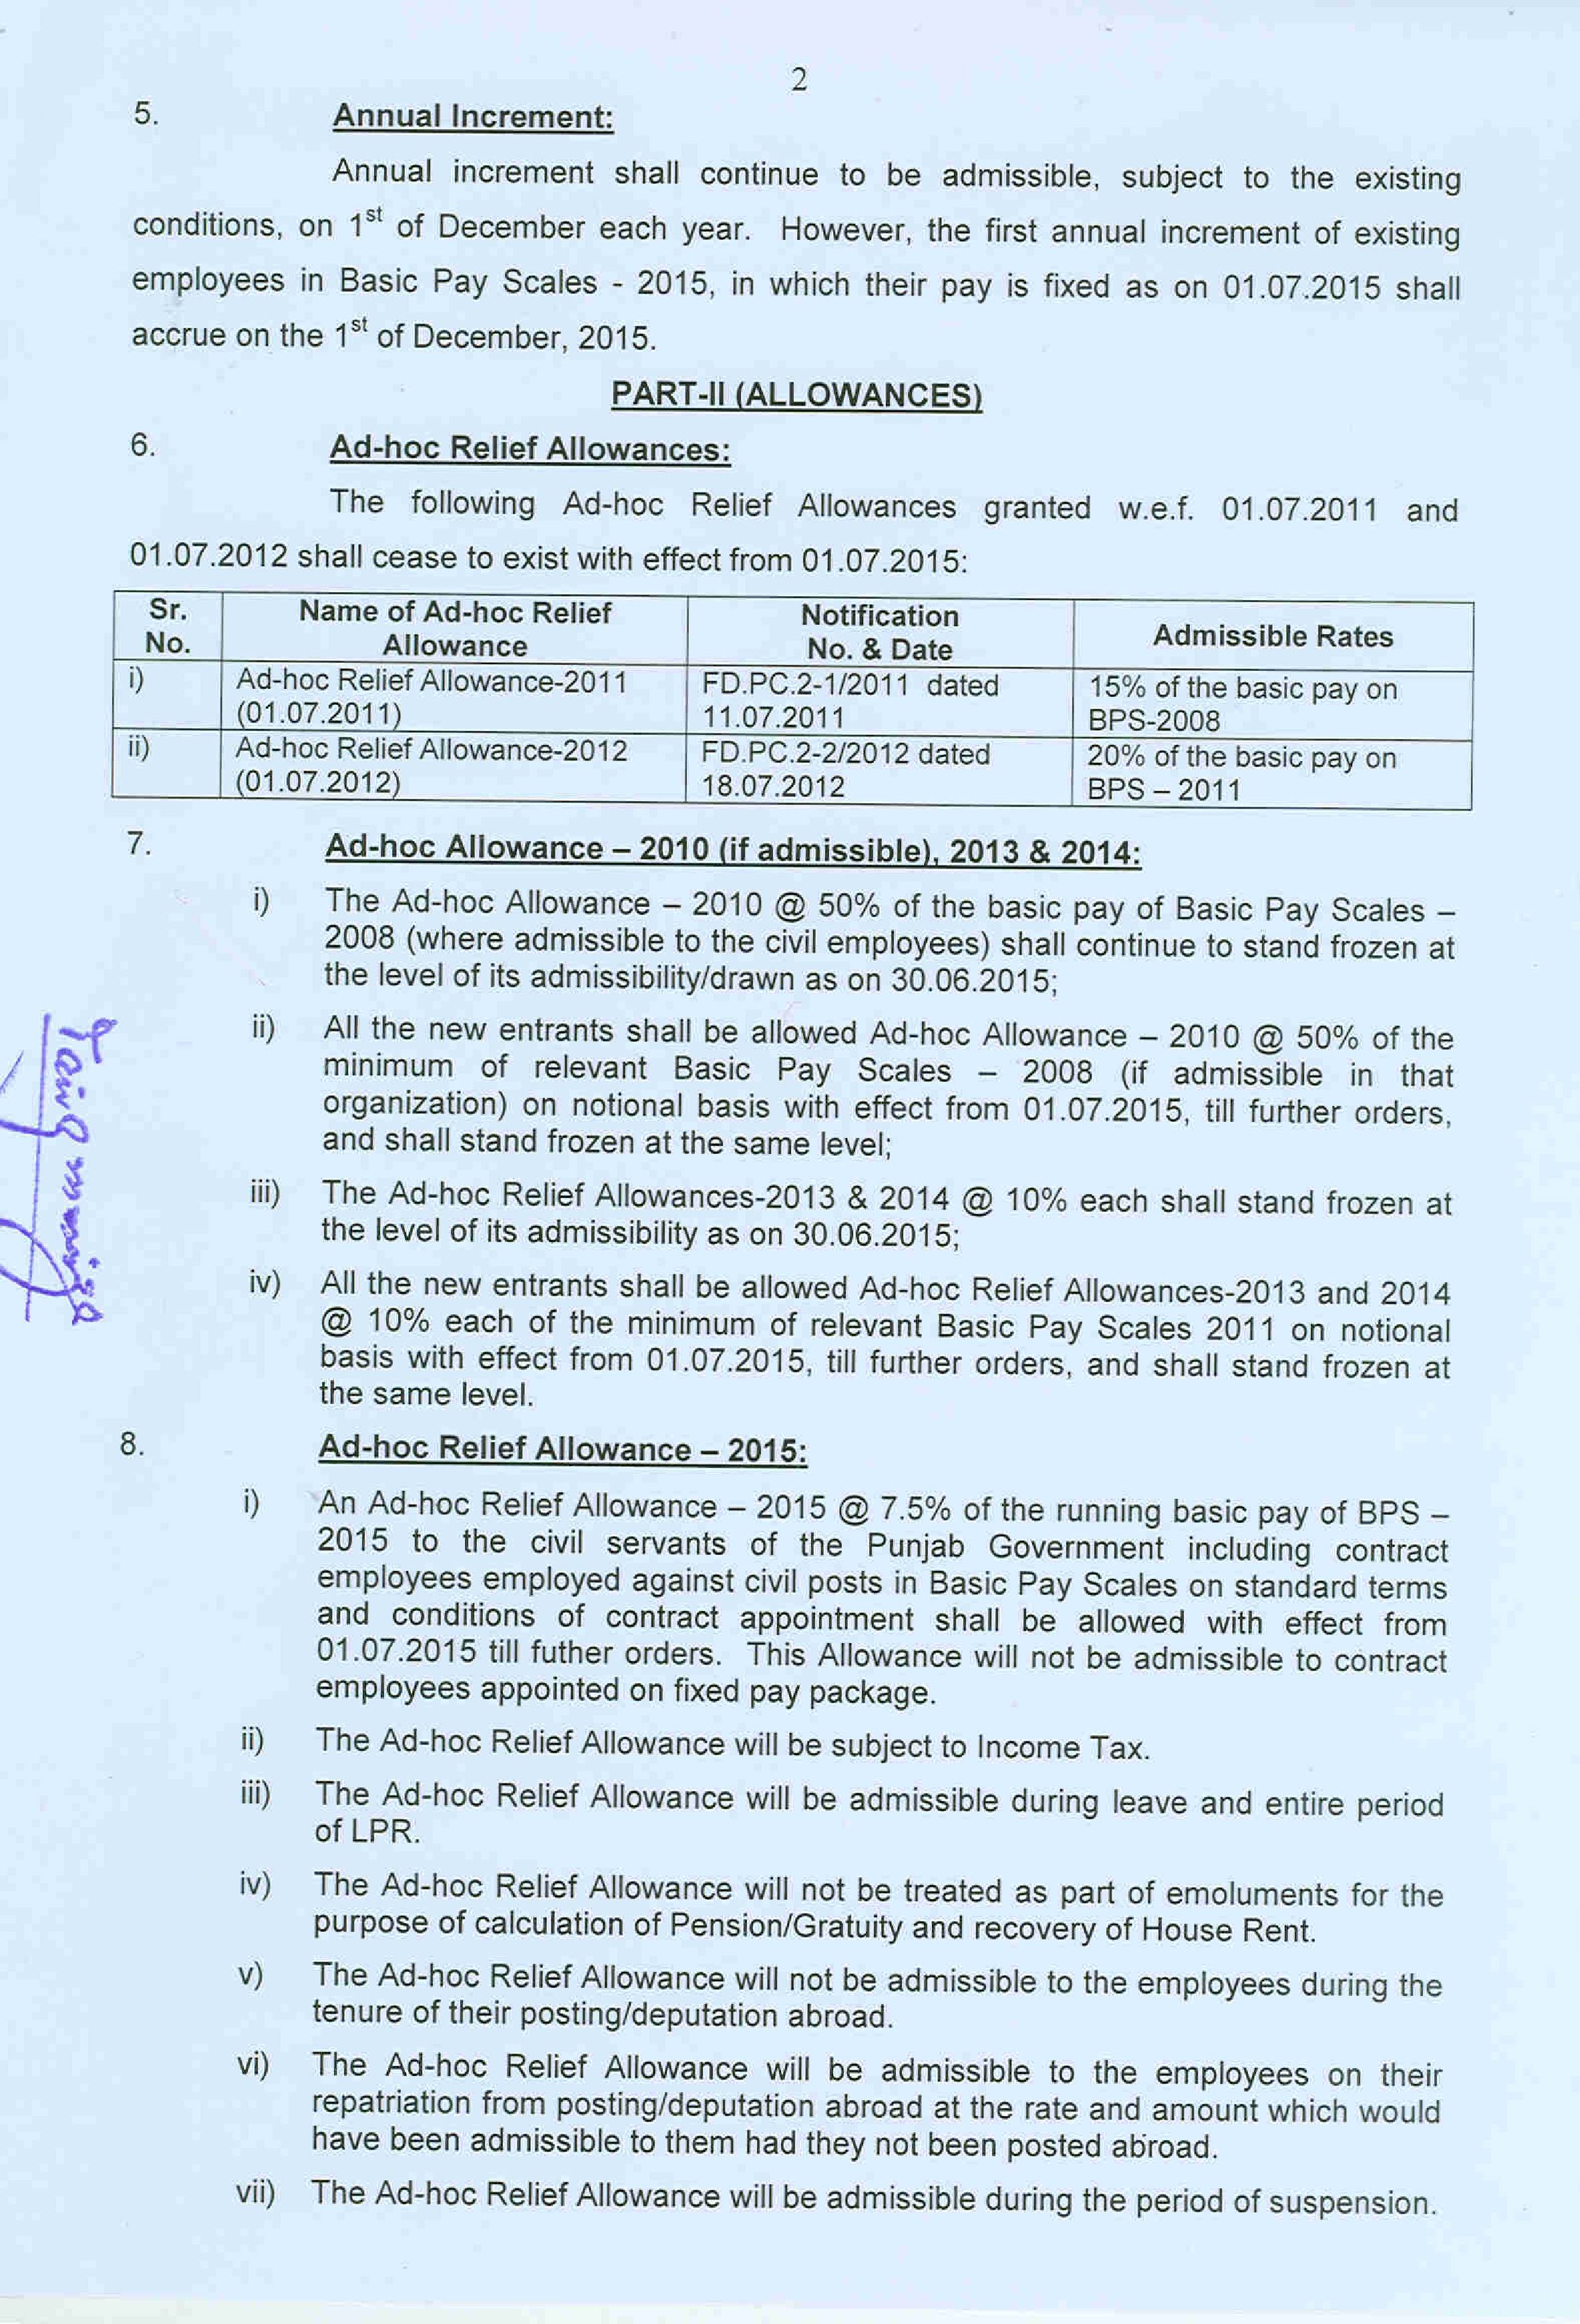 REVISION OF BASIC PAY SCALES and ALLOWANCES OF CIVIL SERVANTS OF THE PUNJAB GOVERNMENT (2015)